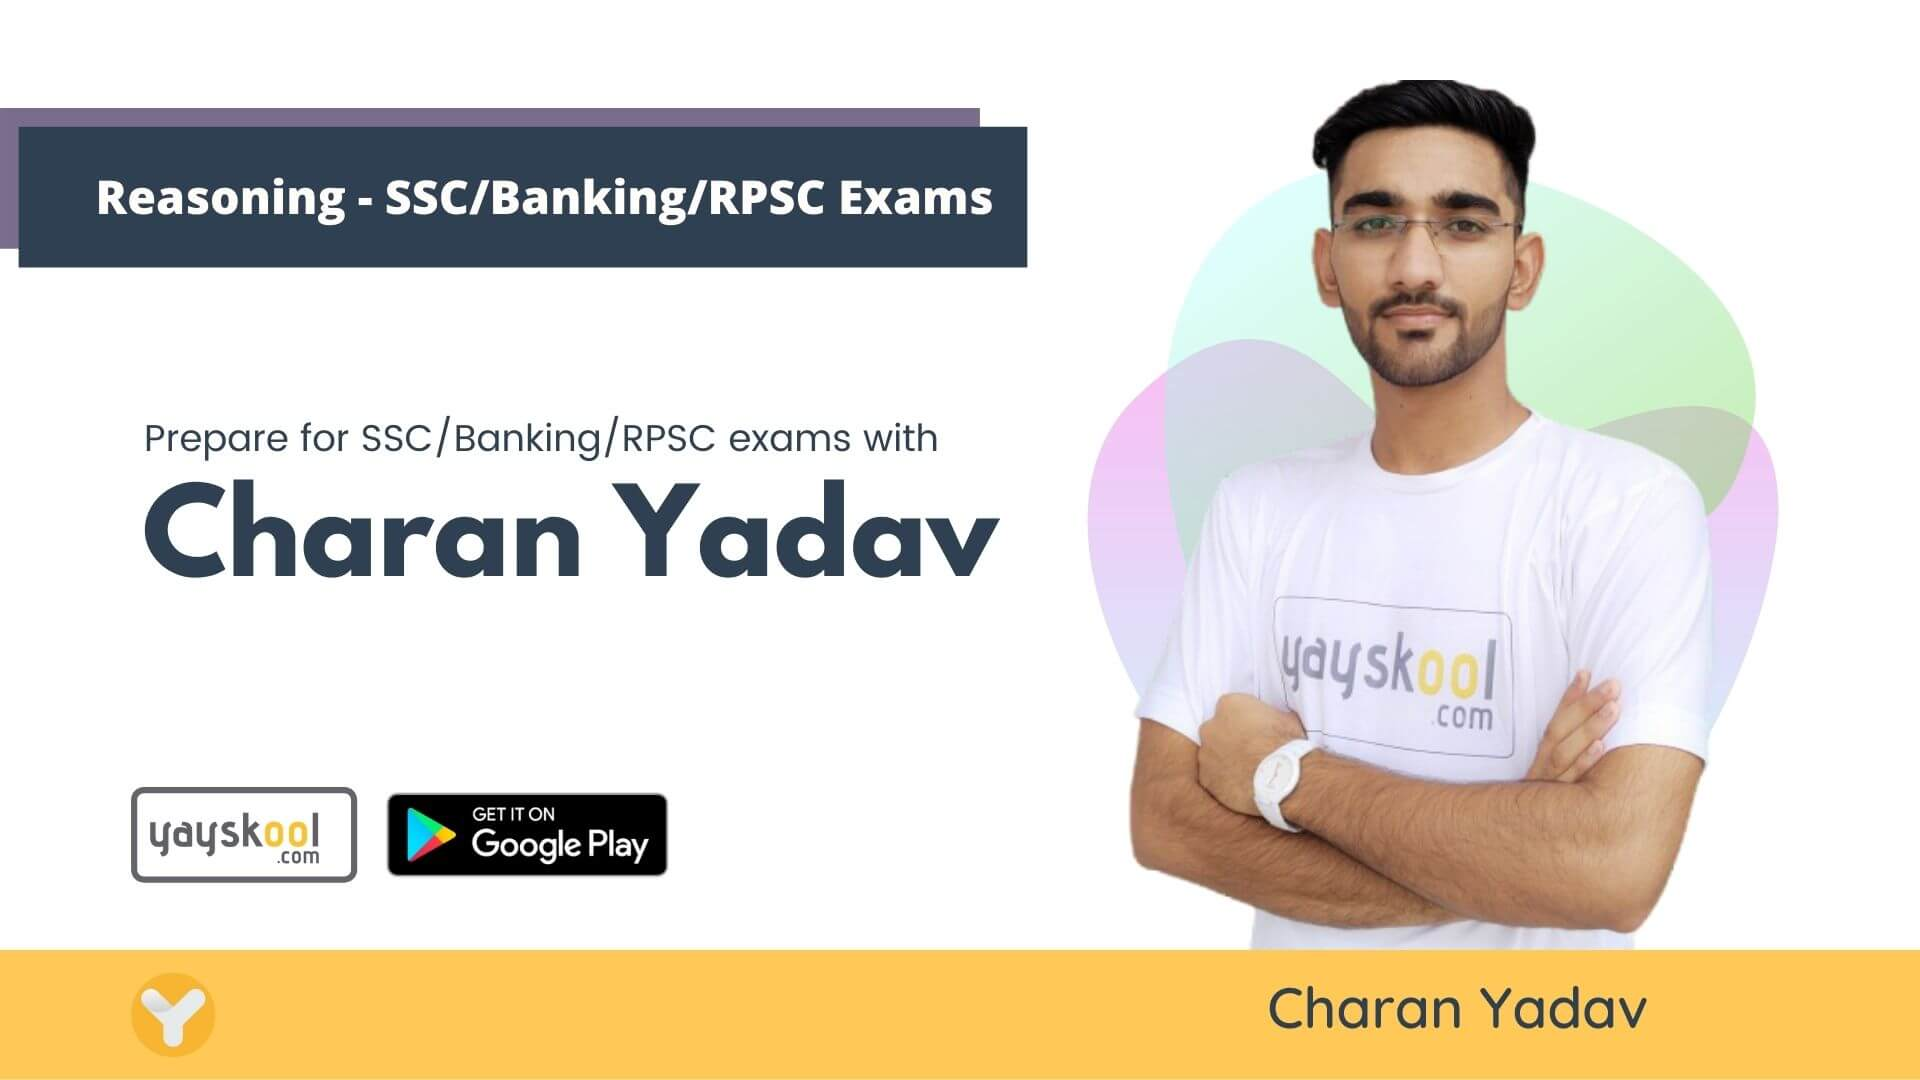 Reasoning Course -  Prepare for SSC/Banking/RPSC exams with Charan Yadav